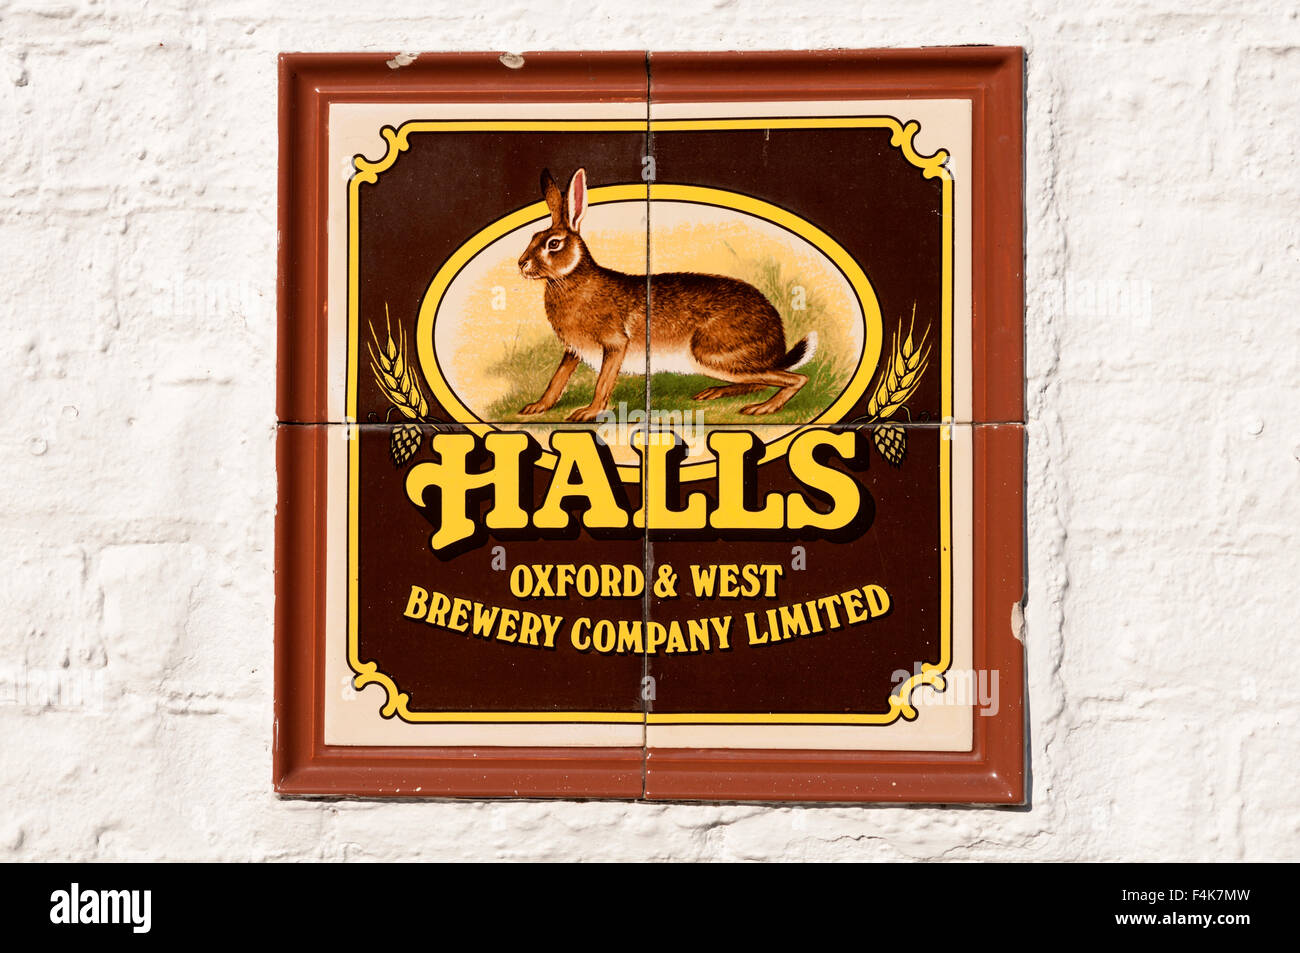 Halls brewery tiles on The Abingdon Arms pub, Beckley, Oxfordshire, England, UK - Stock Image